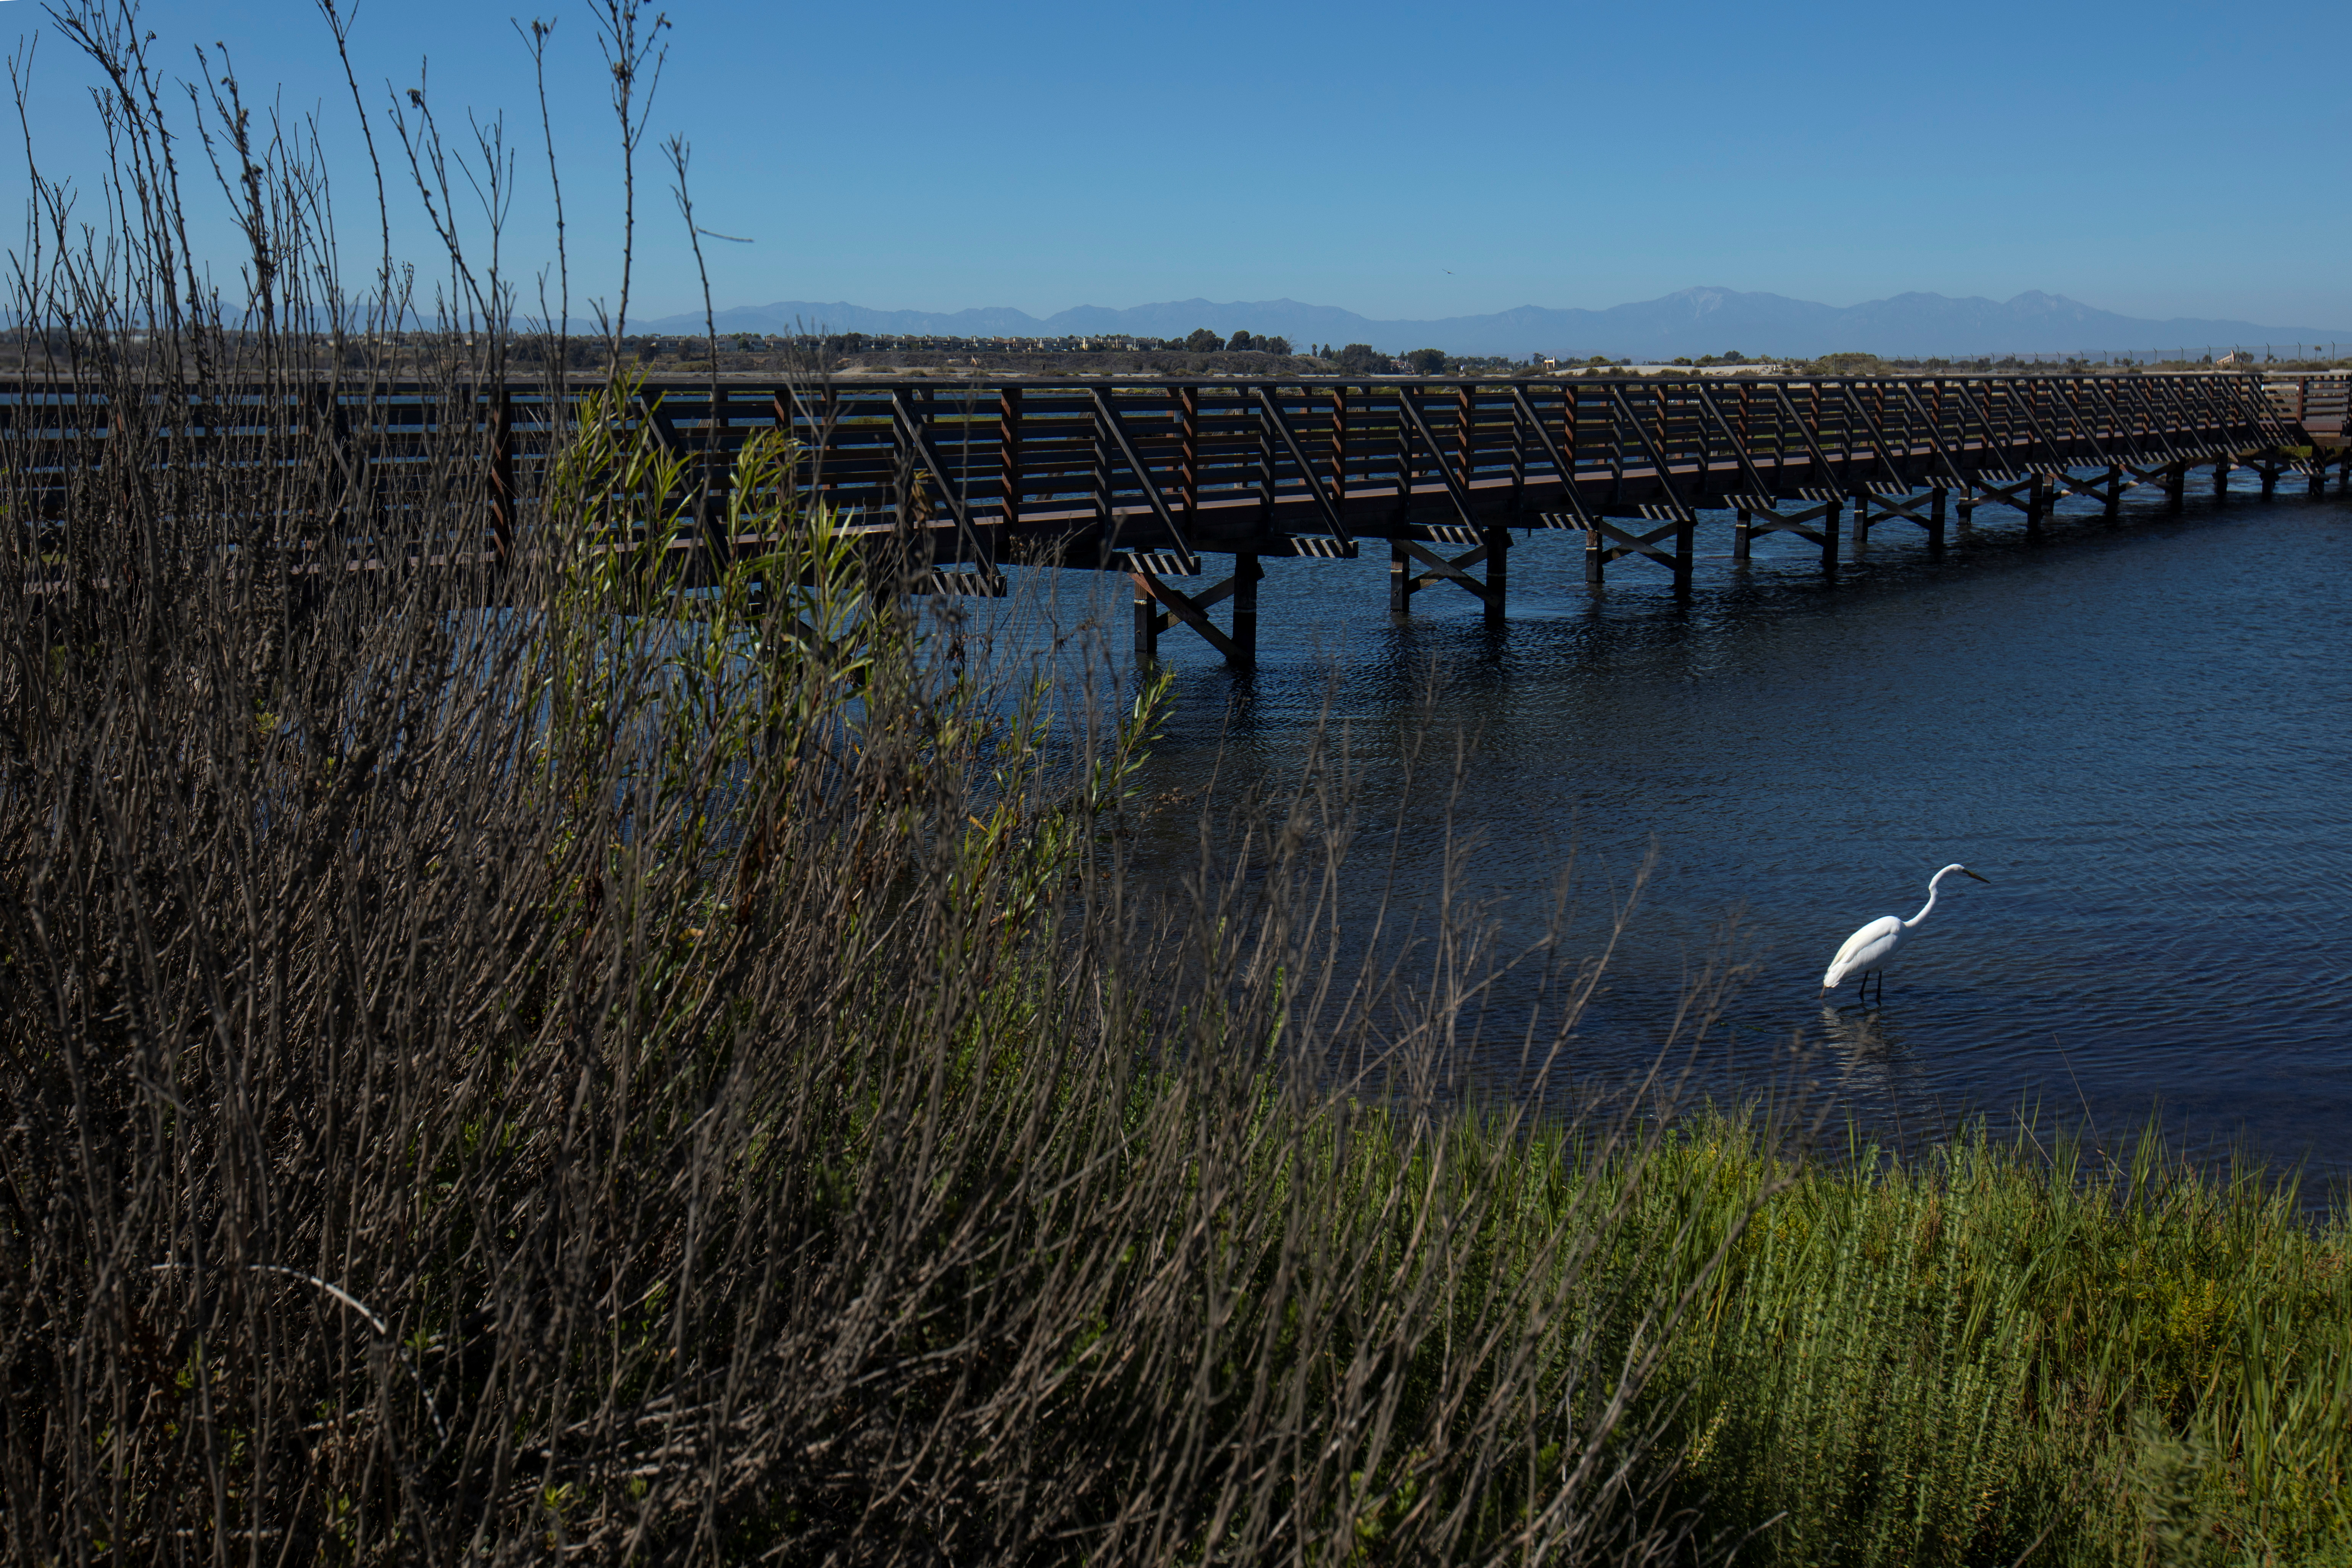 A Great Egret looks for fish as it hunts in the waters of the Bolsa Chica wetlands in Huntington Beach, California, U.S., June 24, 2021. REUTERS/Mike Blake